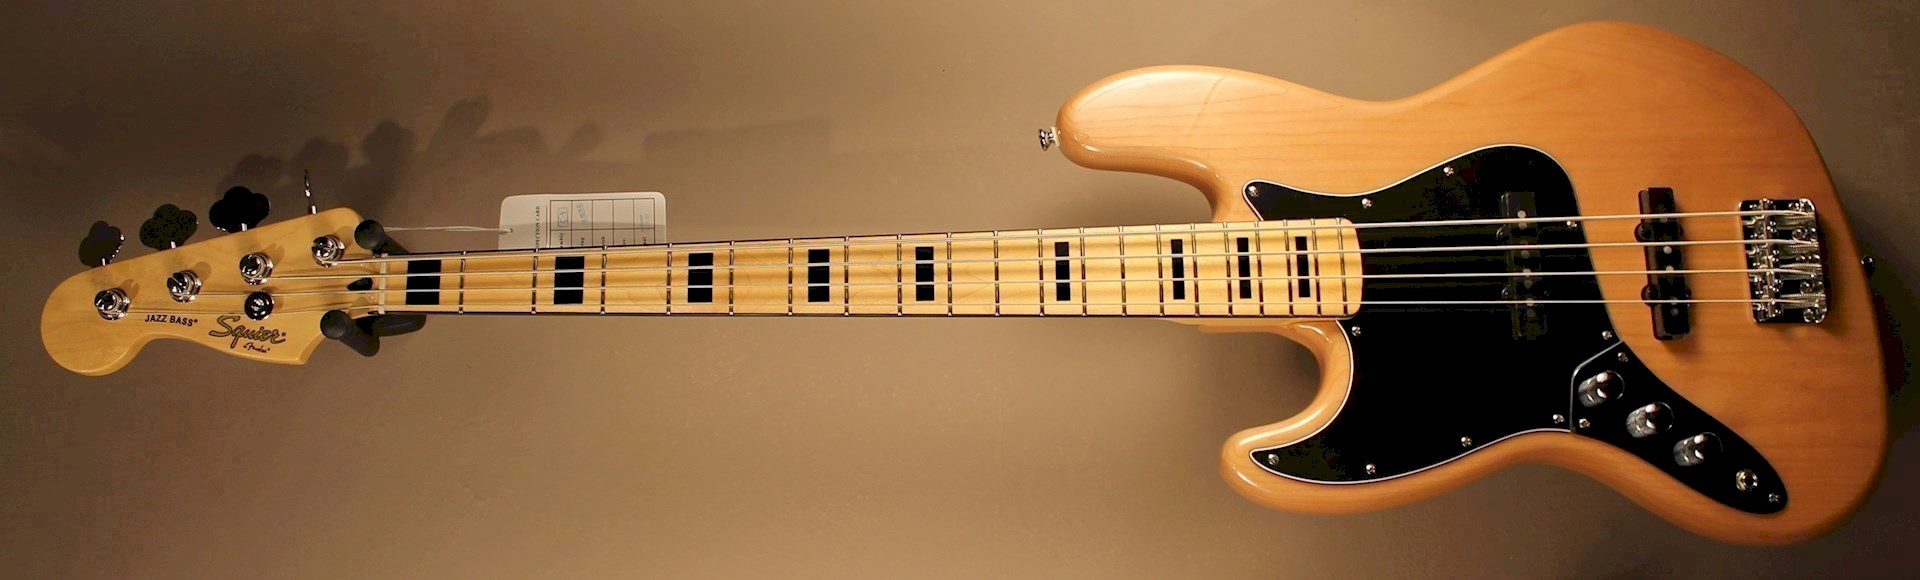 Squier Vintage Modified 70s Jazz Bass Lh Natural Leftyguitars